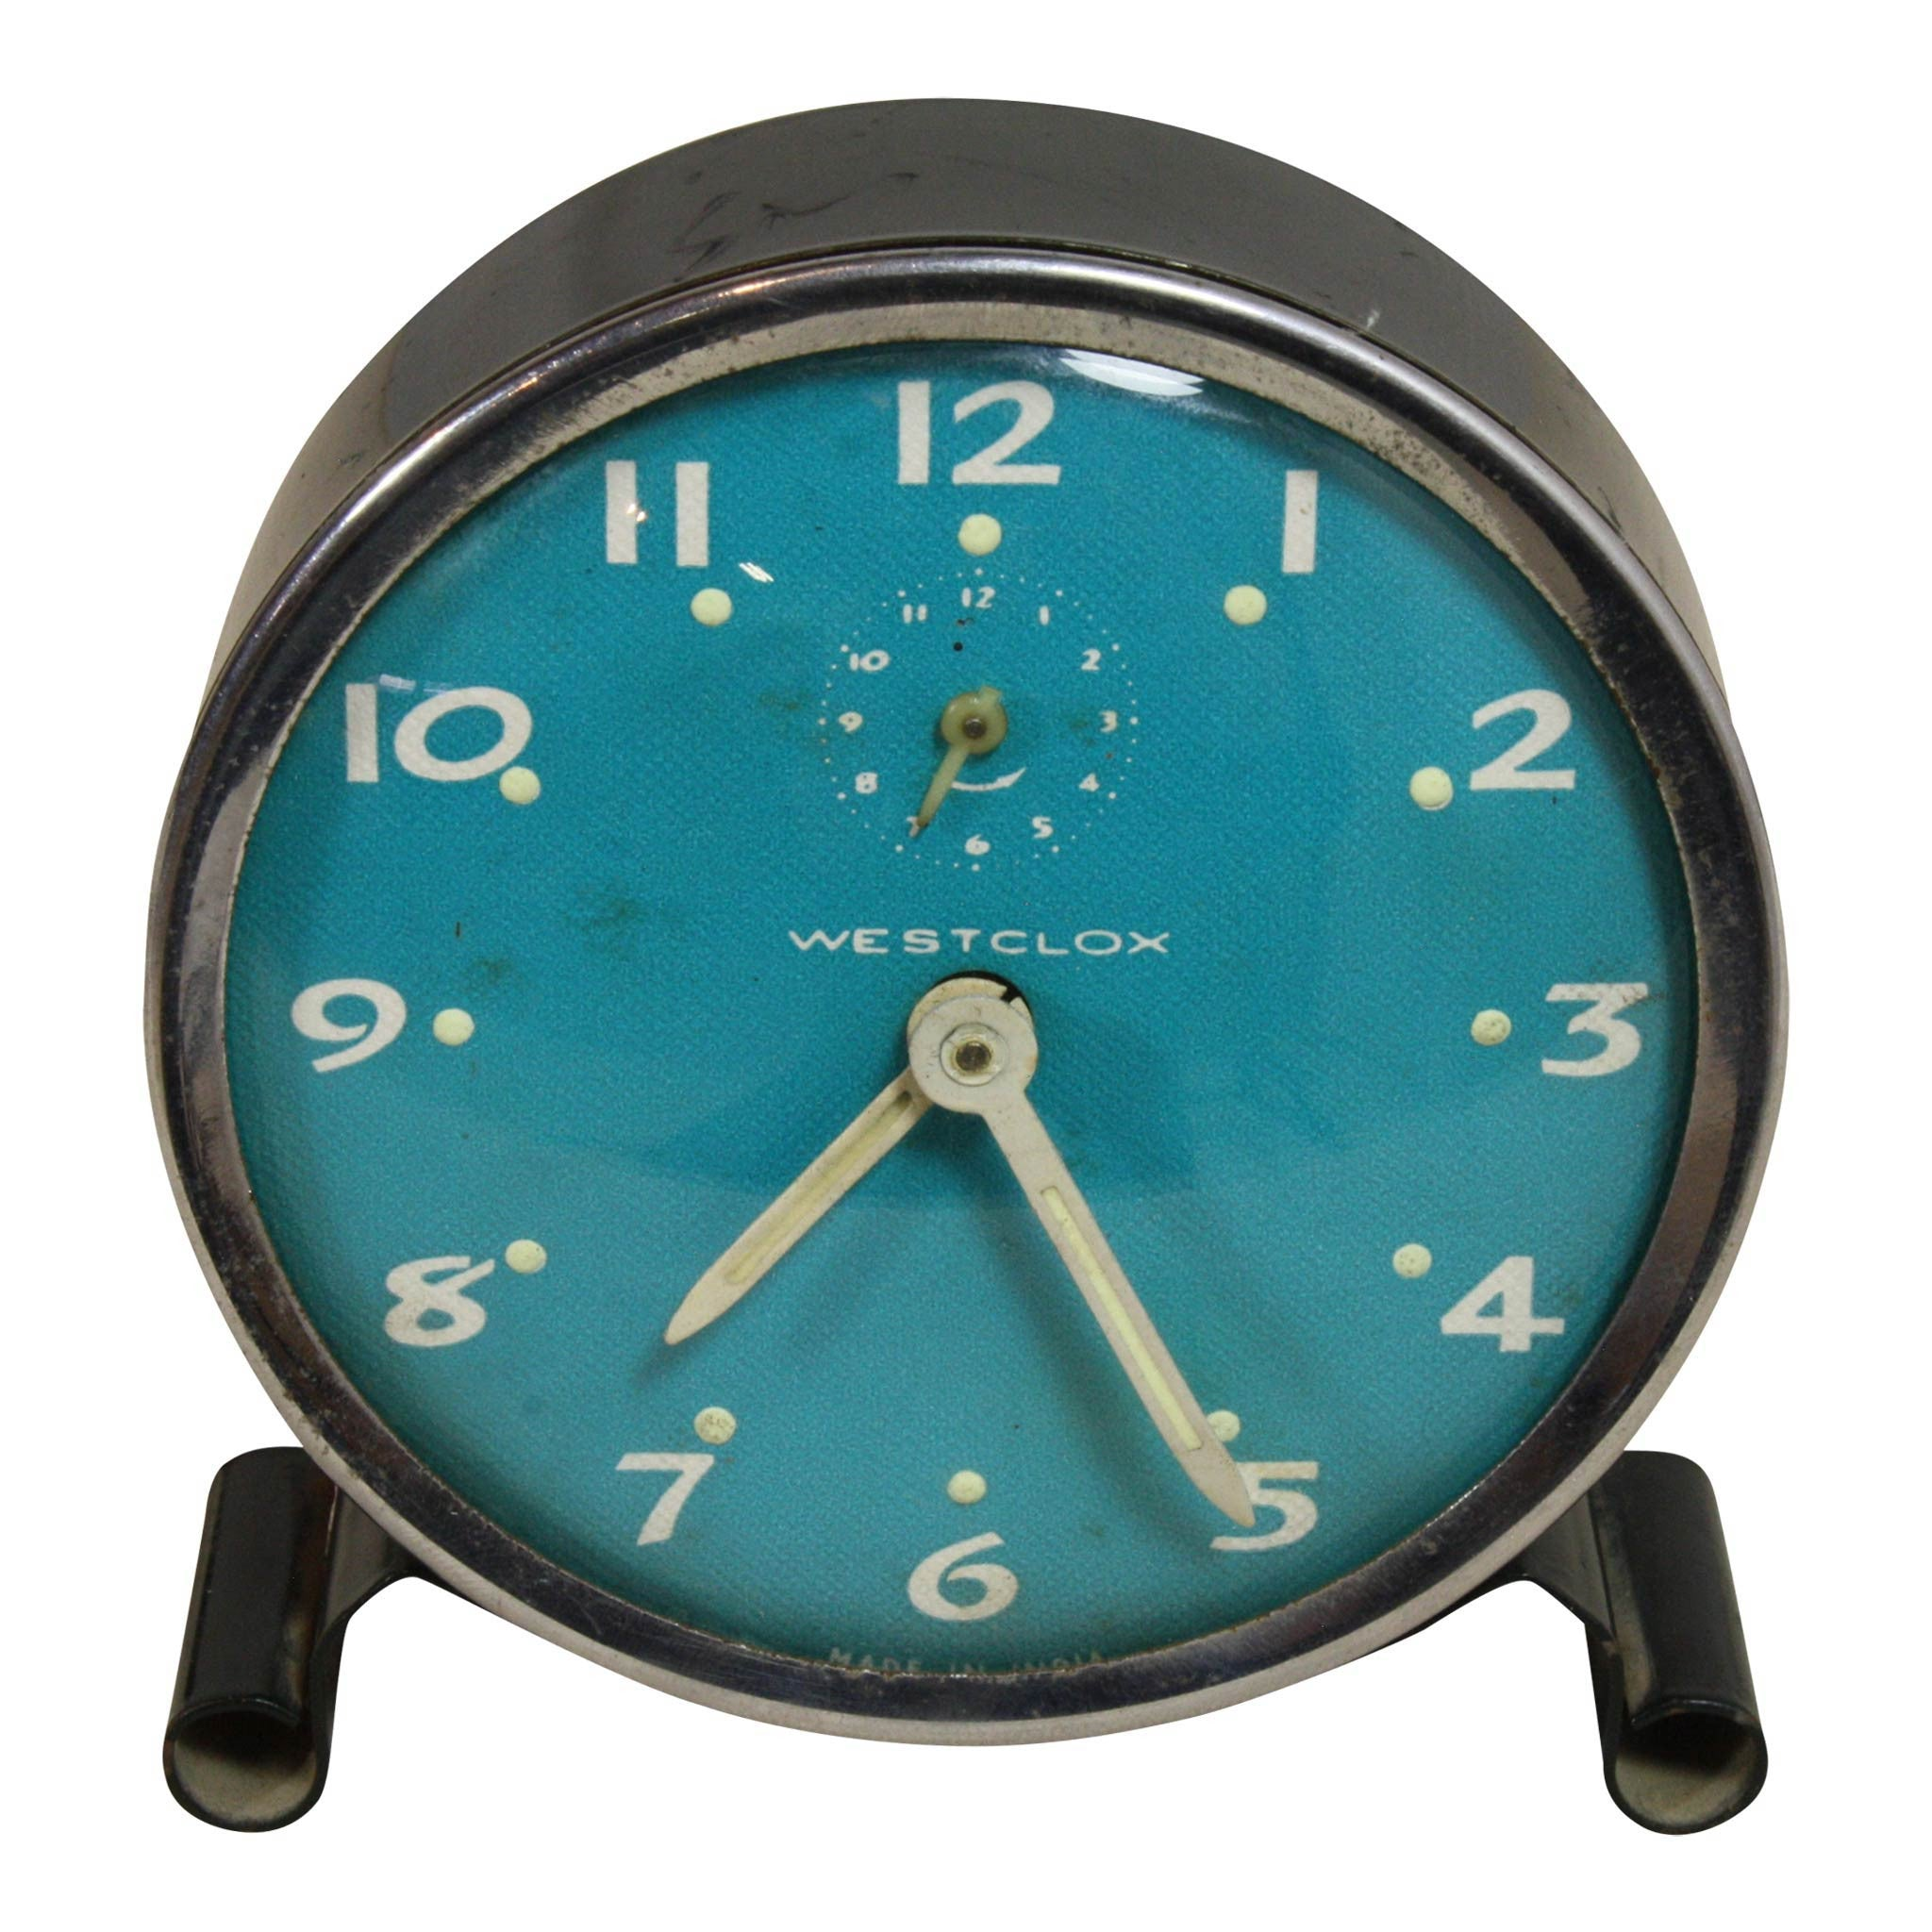 ski-country-antiques - Vintage Westclox Alarm Clock